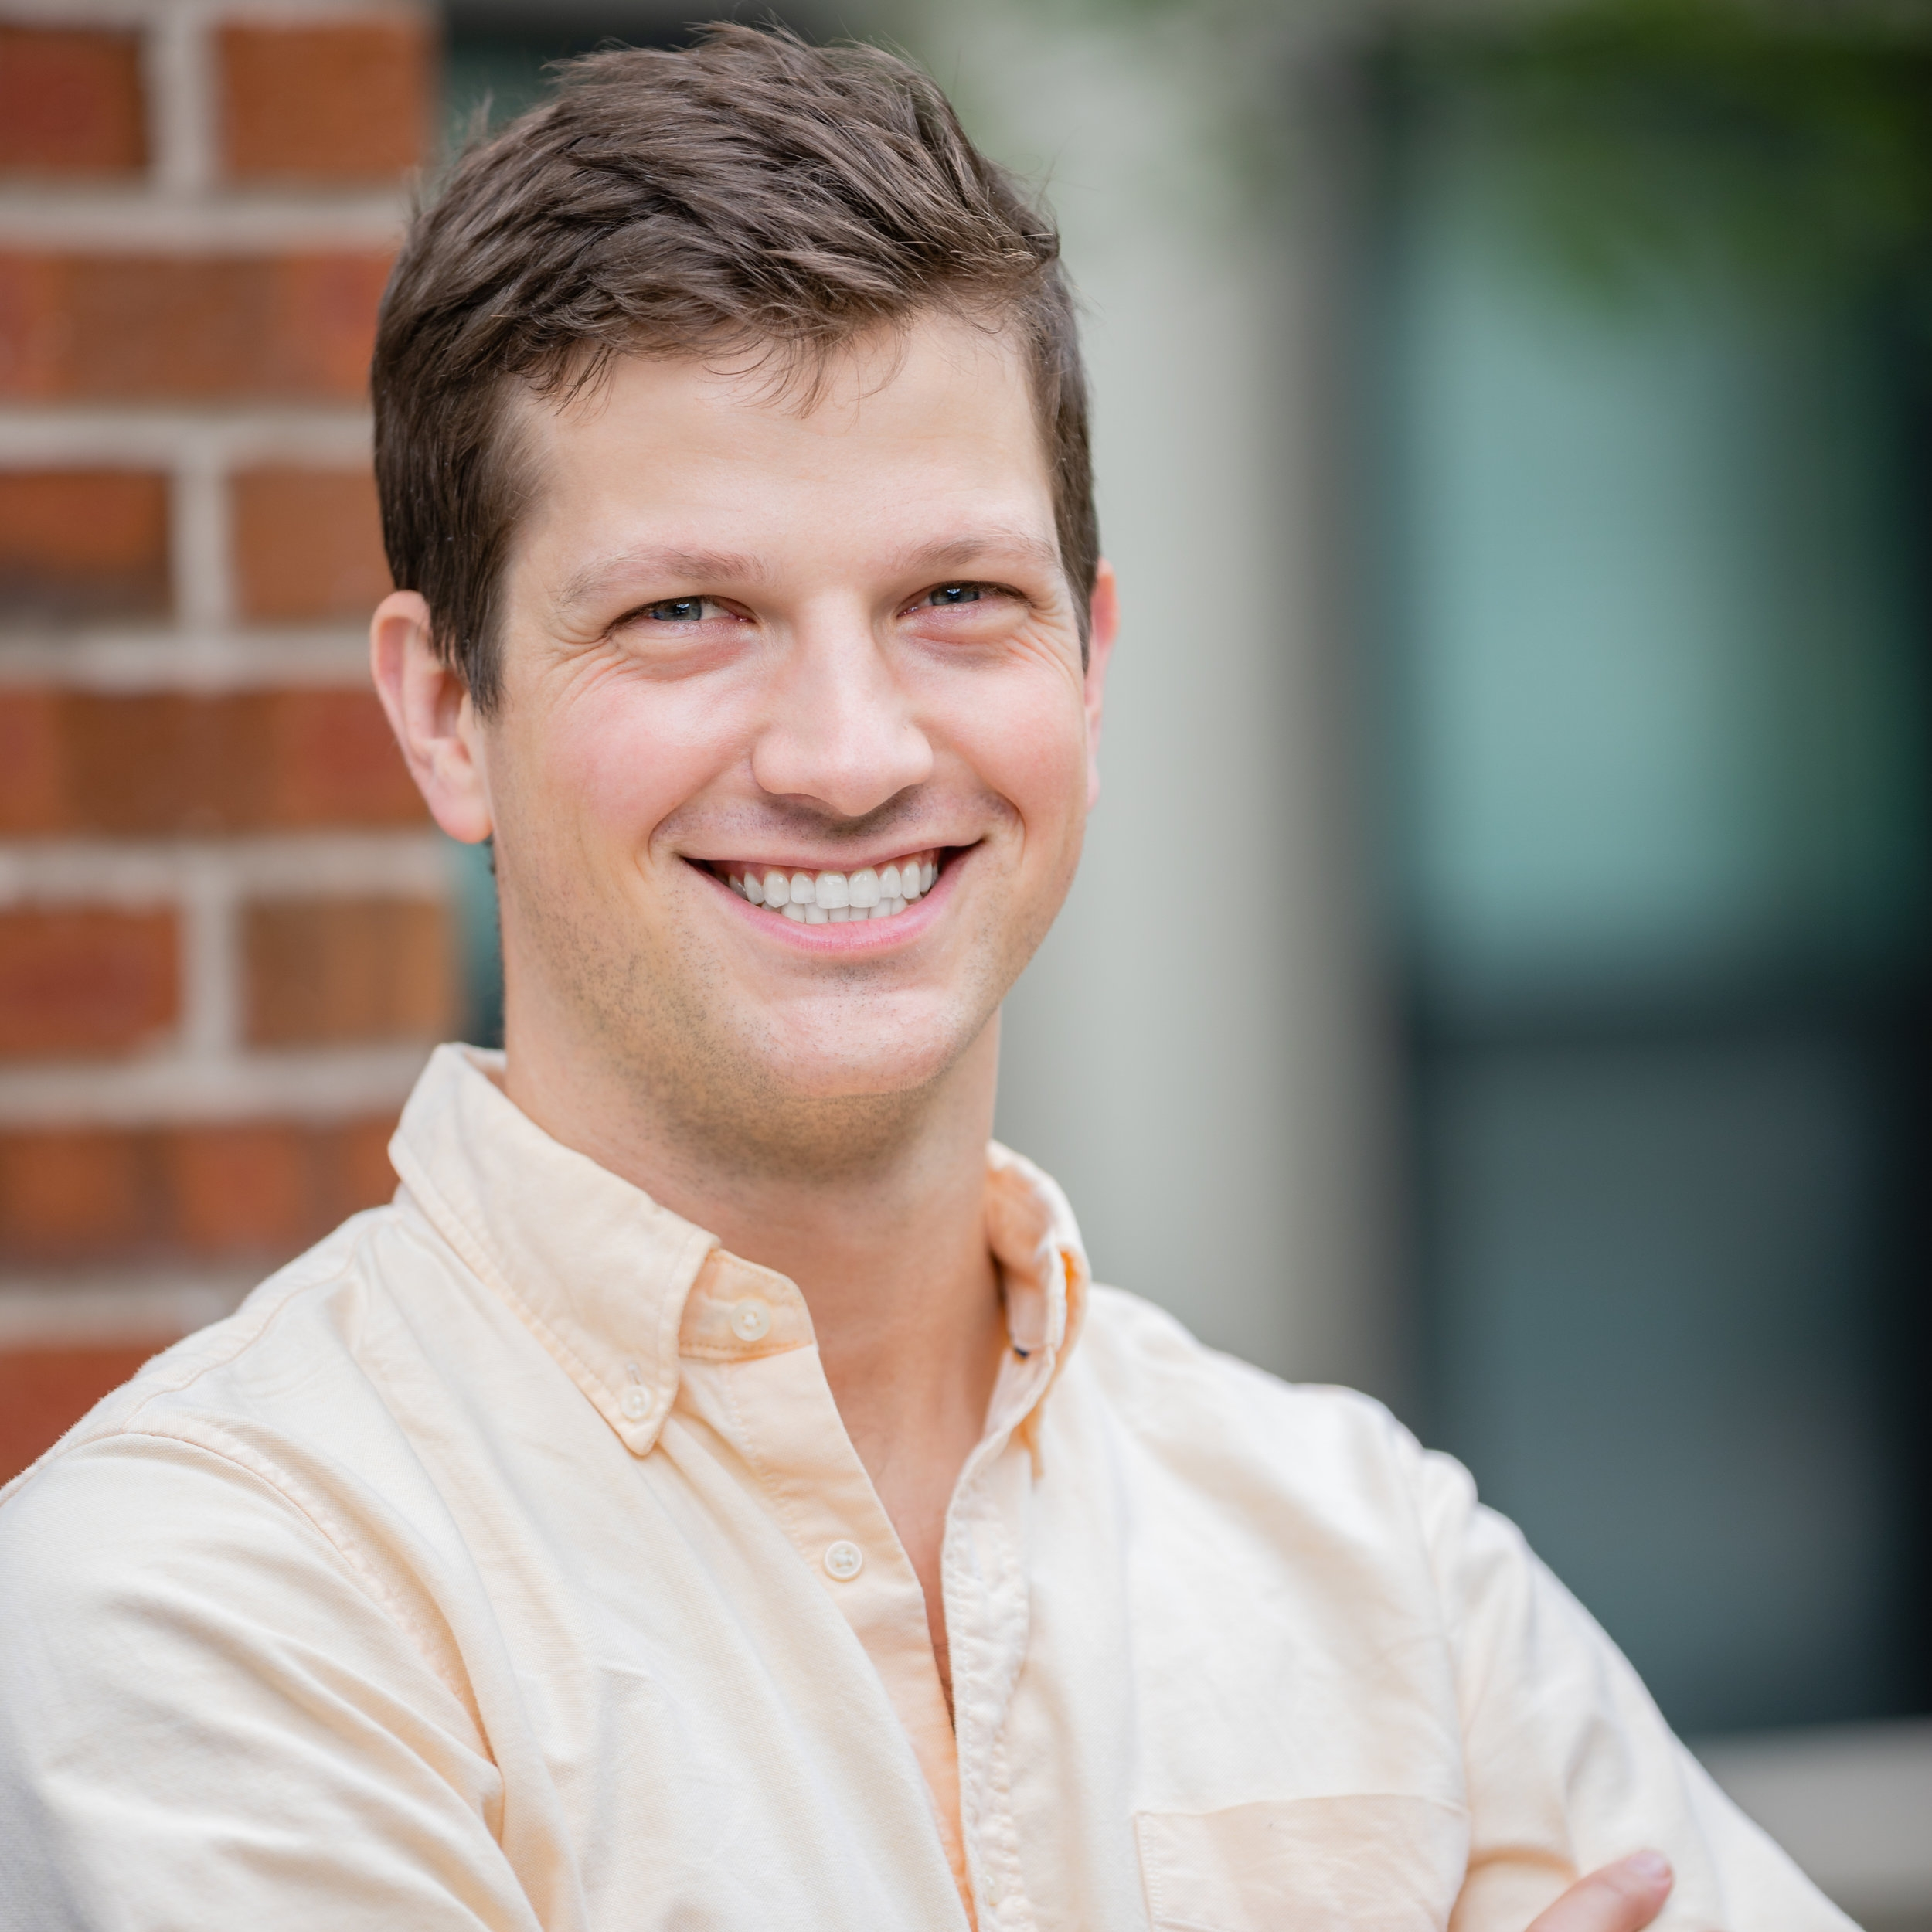 Will Monson   Will joined HRI as a Project Manager in July 2017 as part of the 2017-19 Kuehn Fellowship program. While at HRI, he has helped with several projects in Cambridge: the rehabilitation and financing of Auburn Park (60 units), the financing of Concord Highlands (98 units, new construction), and the financing and rehabilitation of 808 Memorial Drive (300 units).  Will received his Master in City Planning degree from MIT, focusing on Housing, Community, and Economic Development. He was involved in the Federal Home Loan Bank of Boston Affordable Housing Development Competition, both as a participant in 2016 and a student coordinator in 2017. Prior to HRI and grad school, he worked as a research associate at the Urban Institute in Washington, D.C. and received his BA in Economics from Wesleyan University. He also plays saxophone in a band of urban planners.